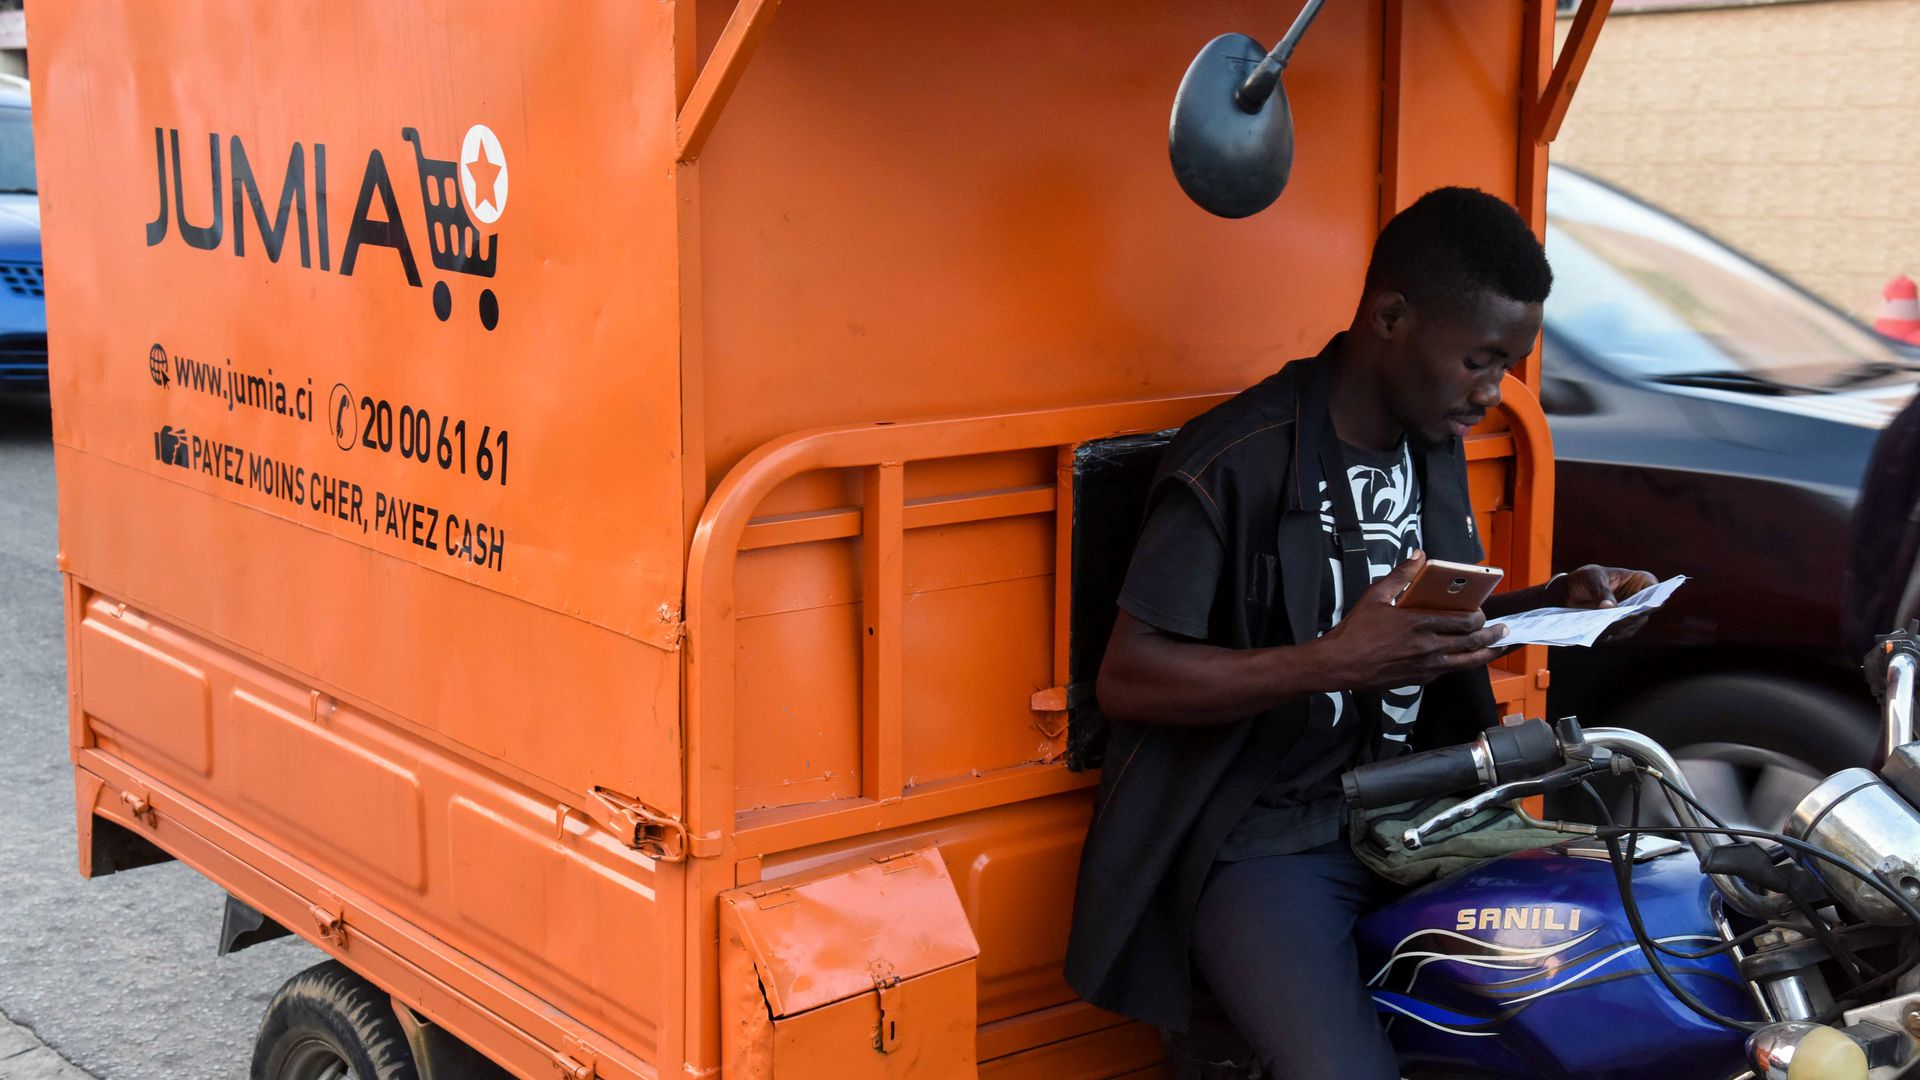 A man studies a piece of paper while leaning against an orange Jumia delivery vehicle